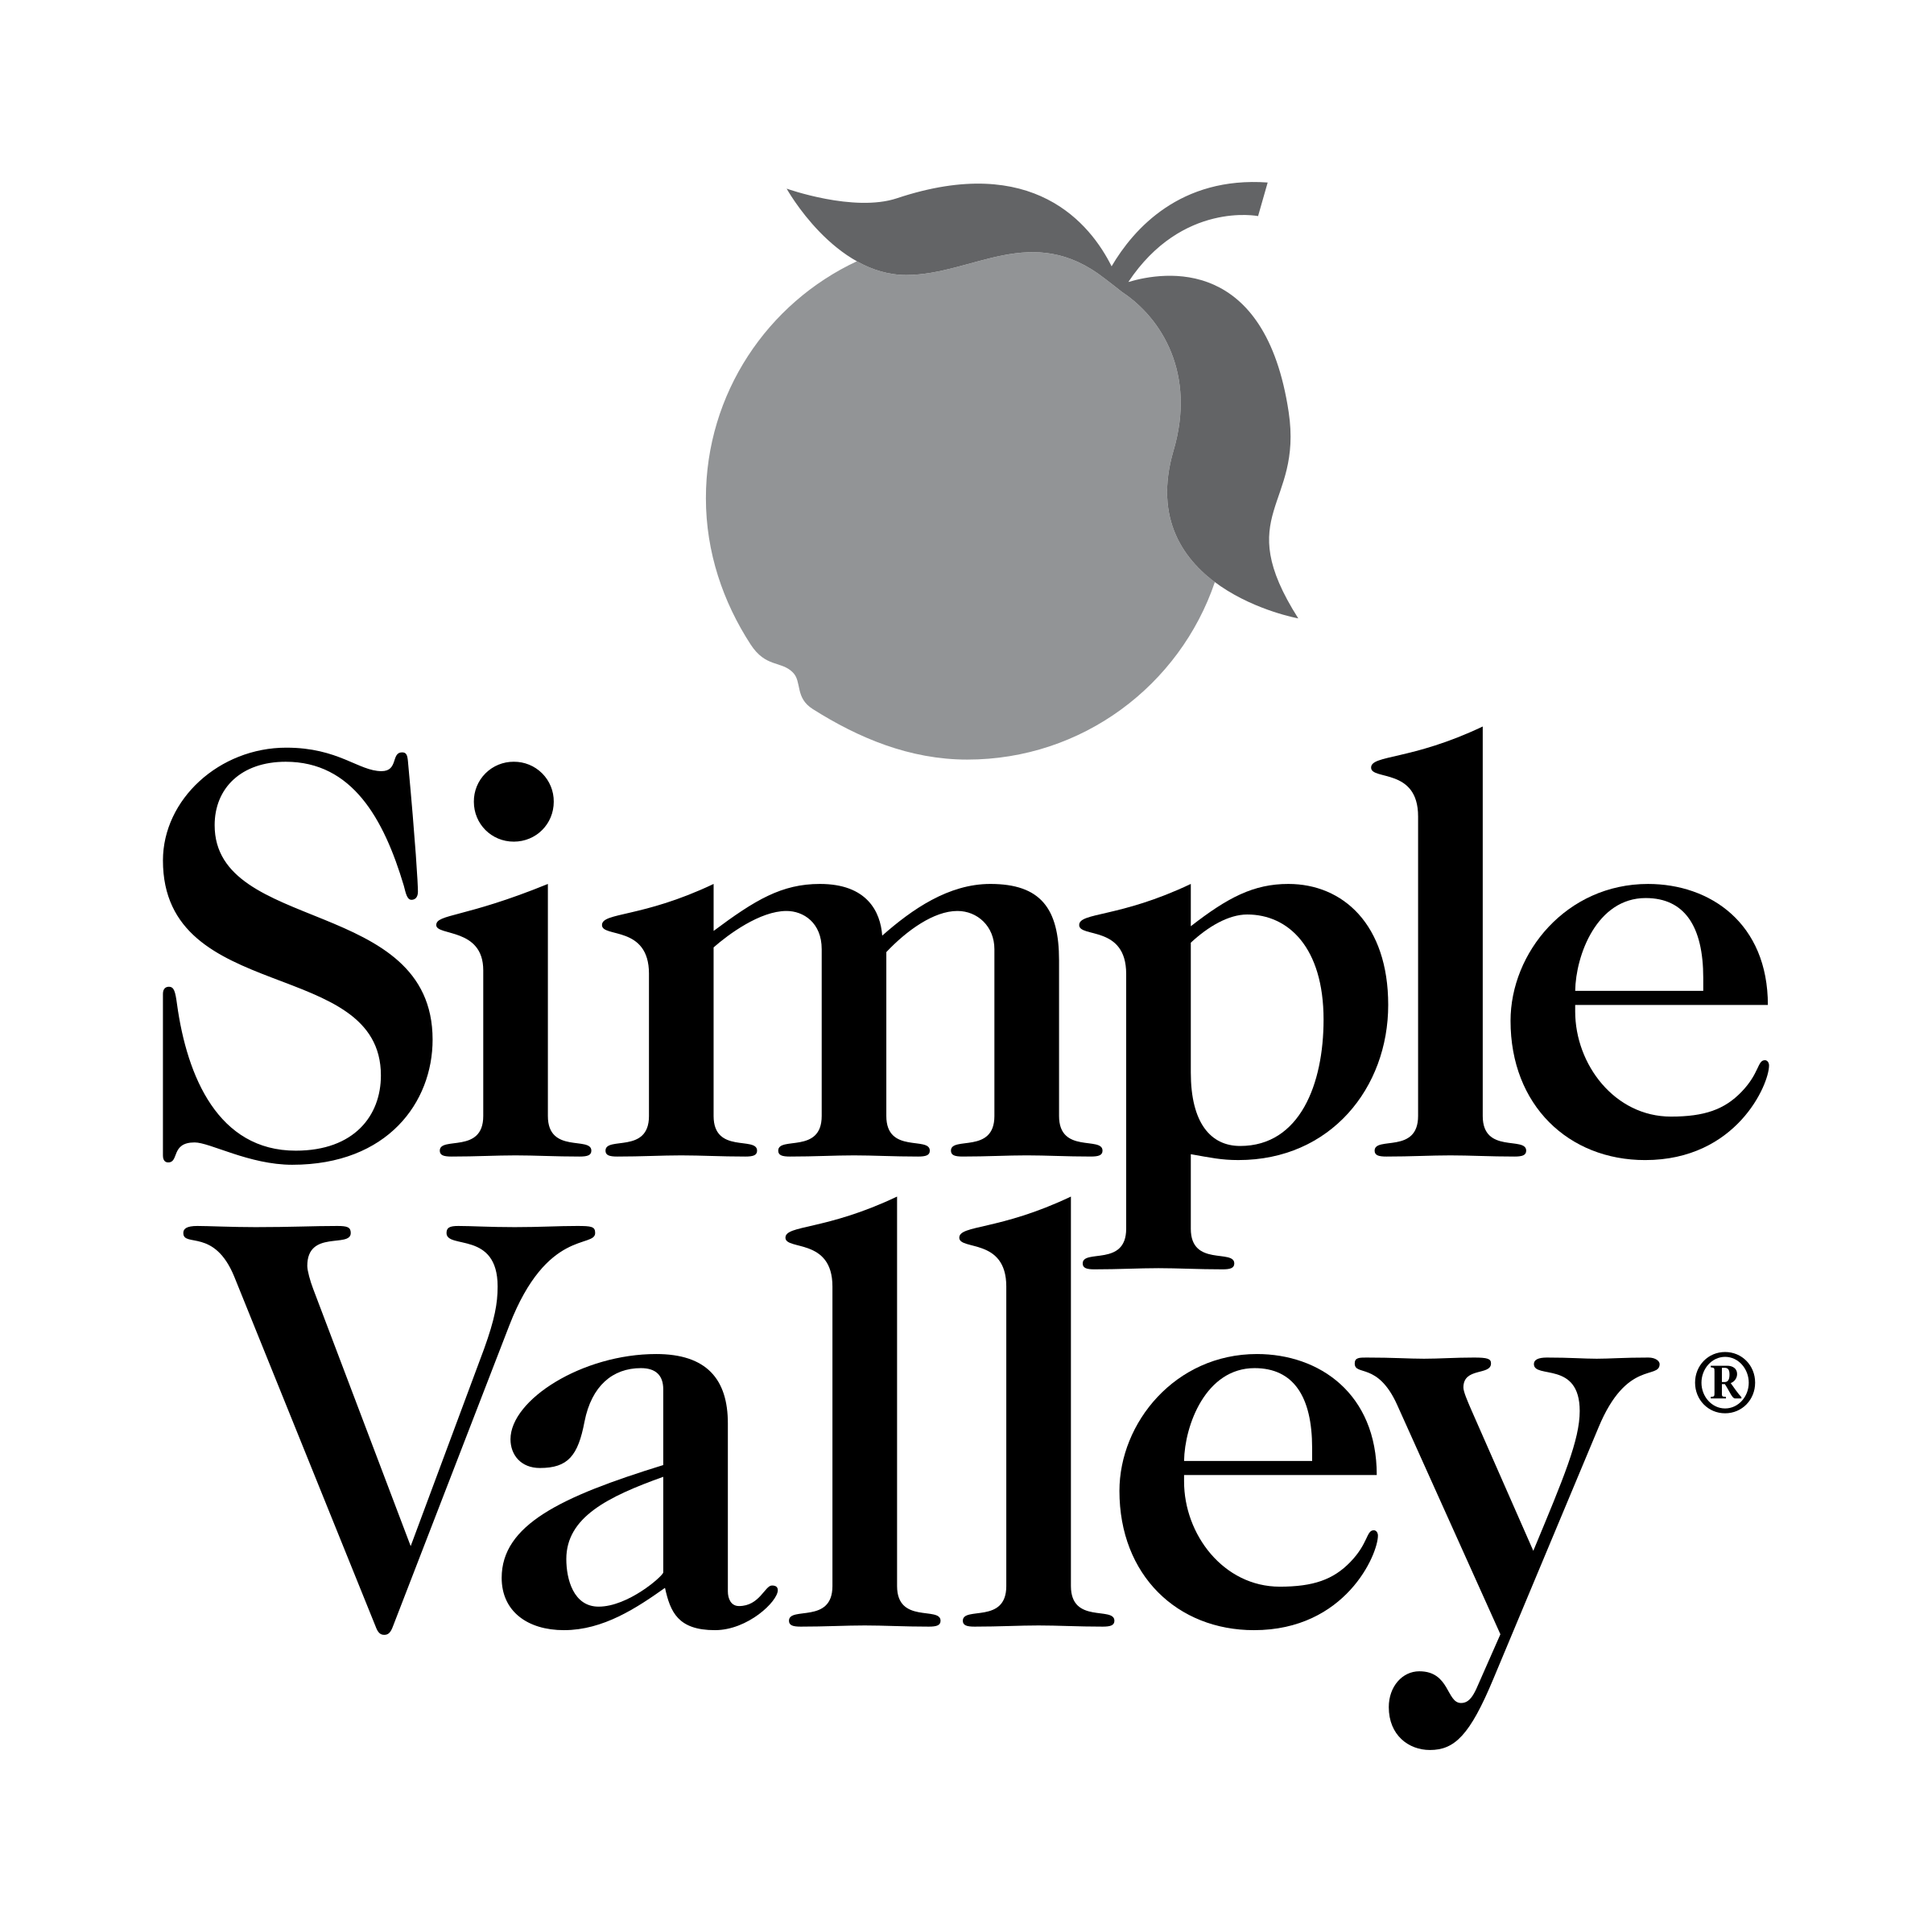 Valley vector black and white. Simple logo png transparent